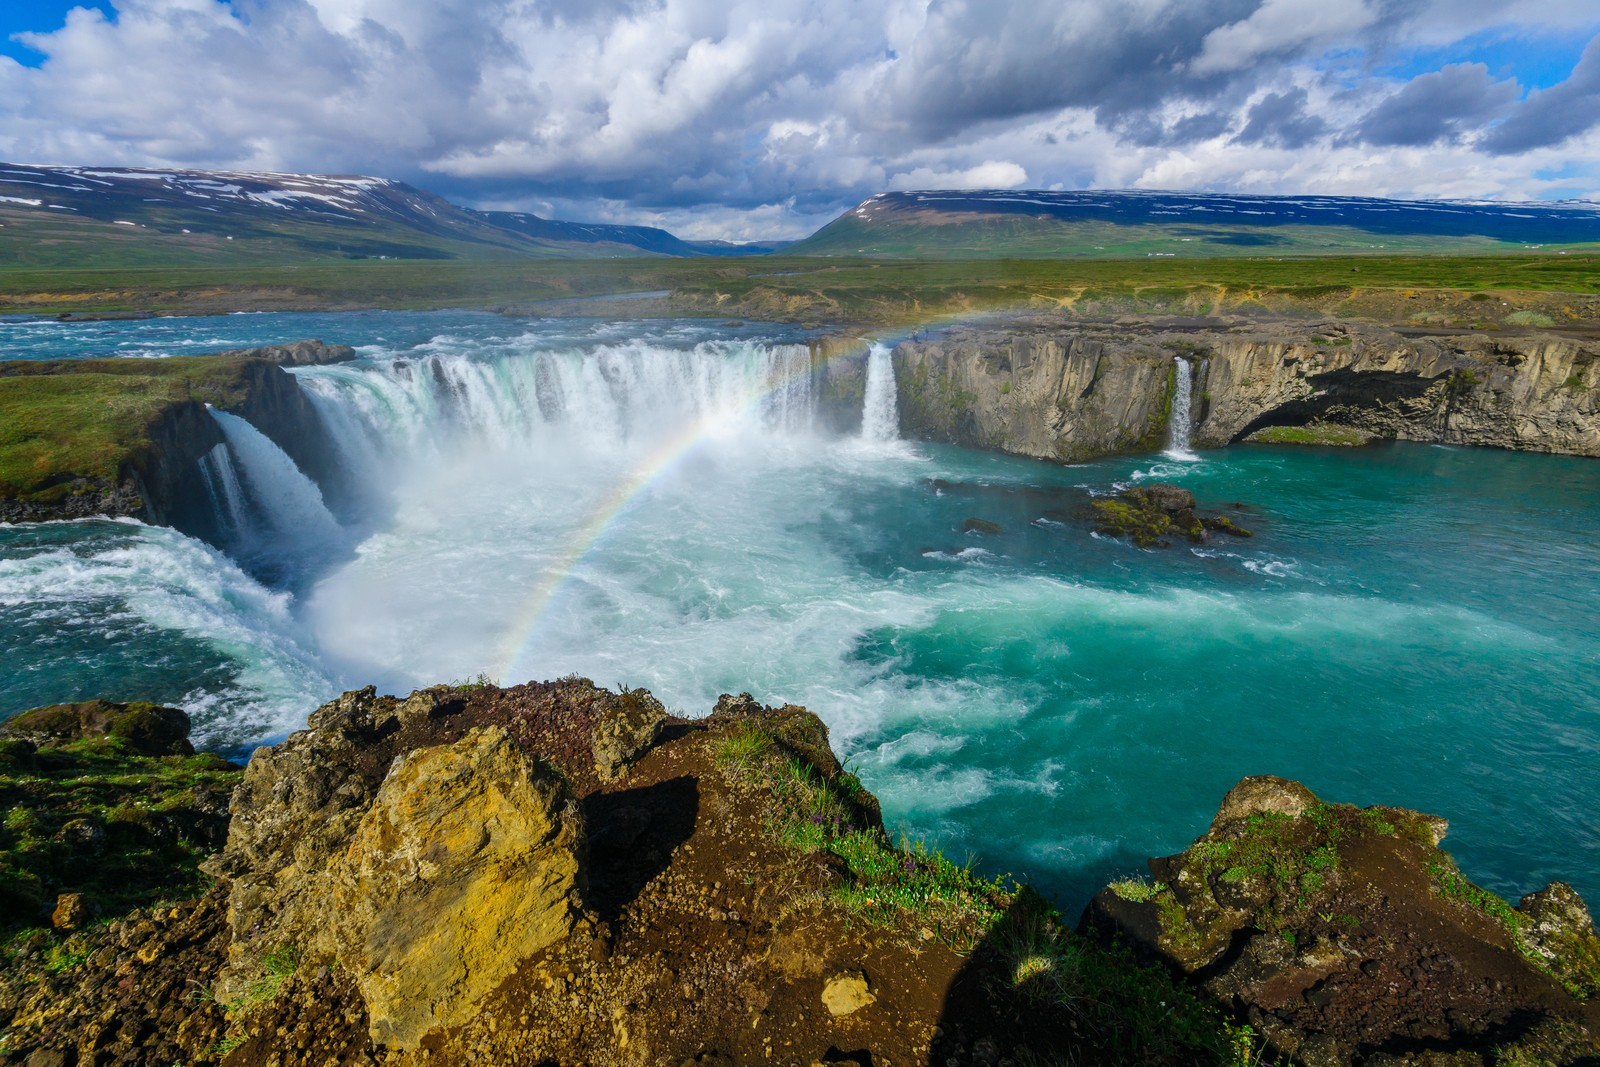 Goðafoss waterfall with a rainbow, Iceland